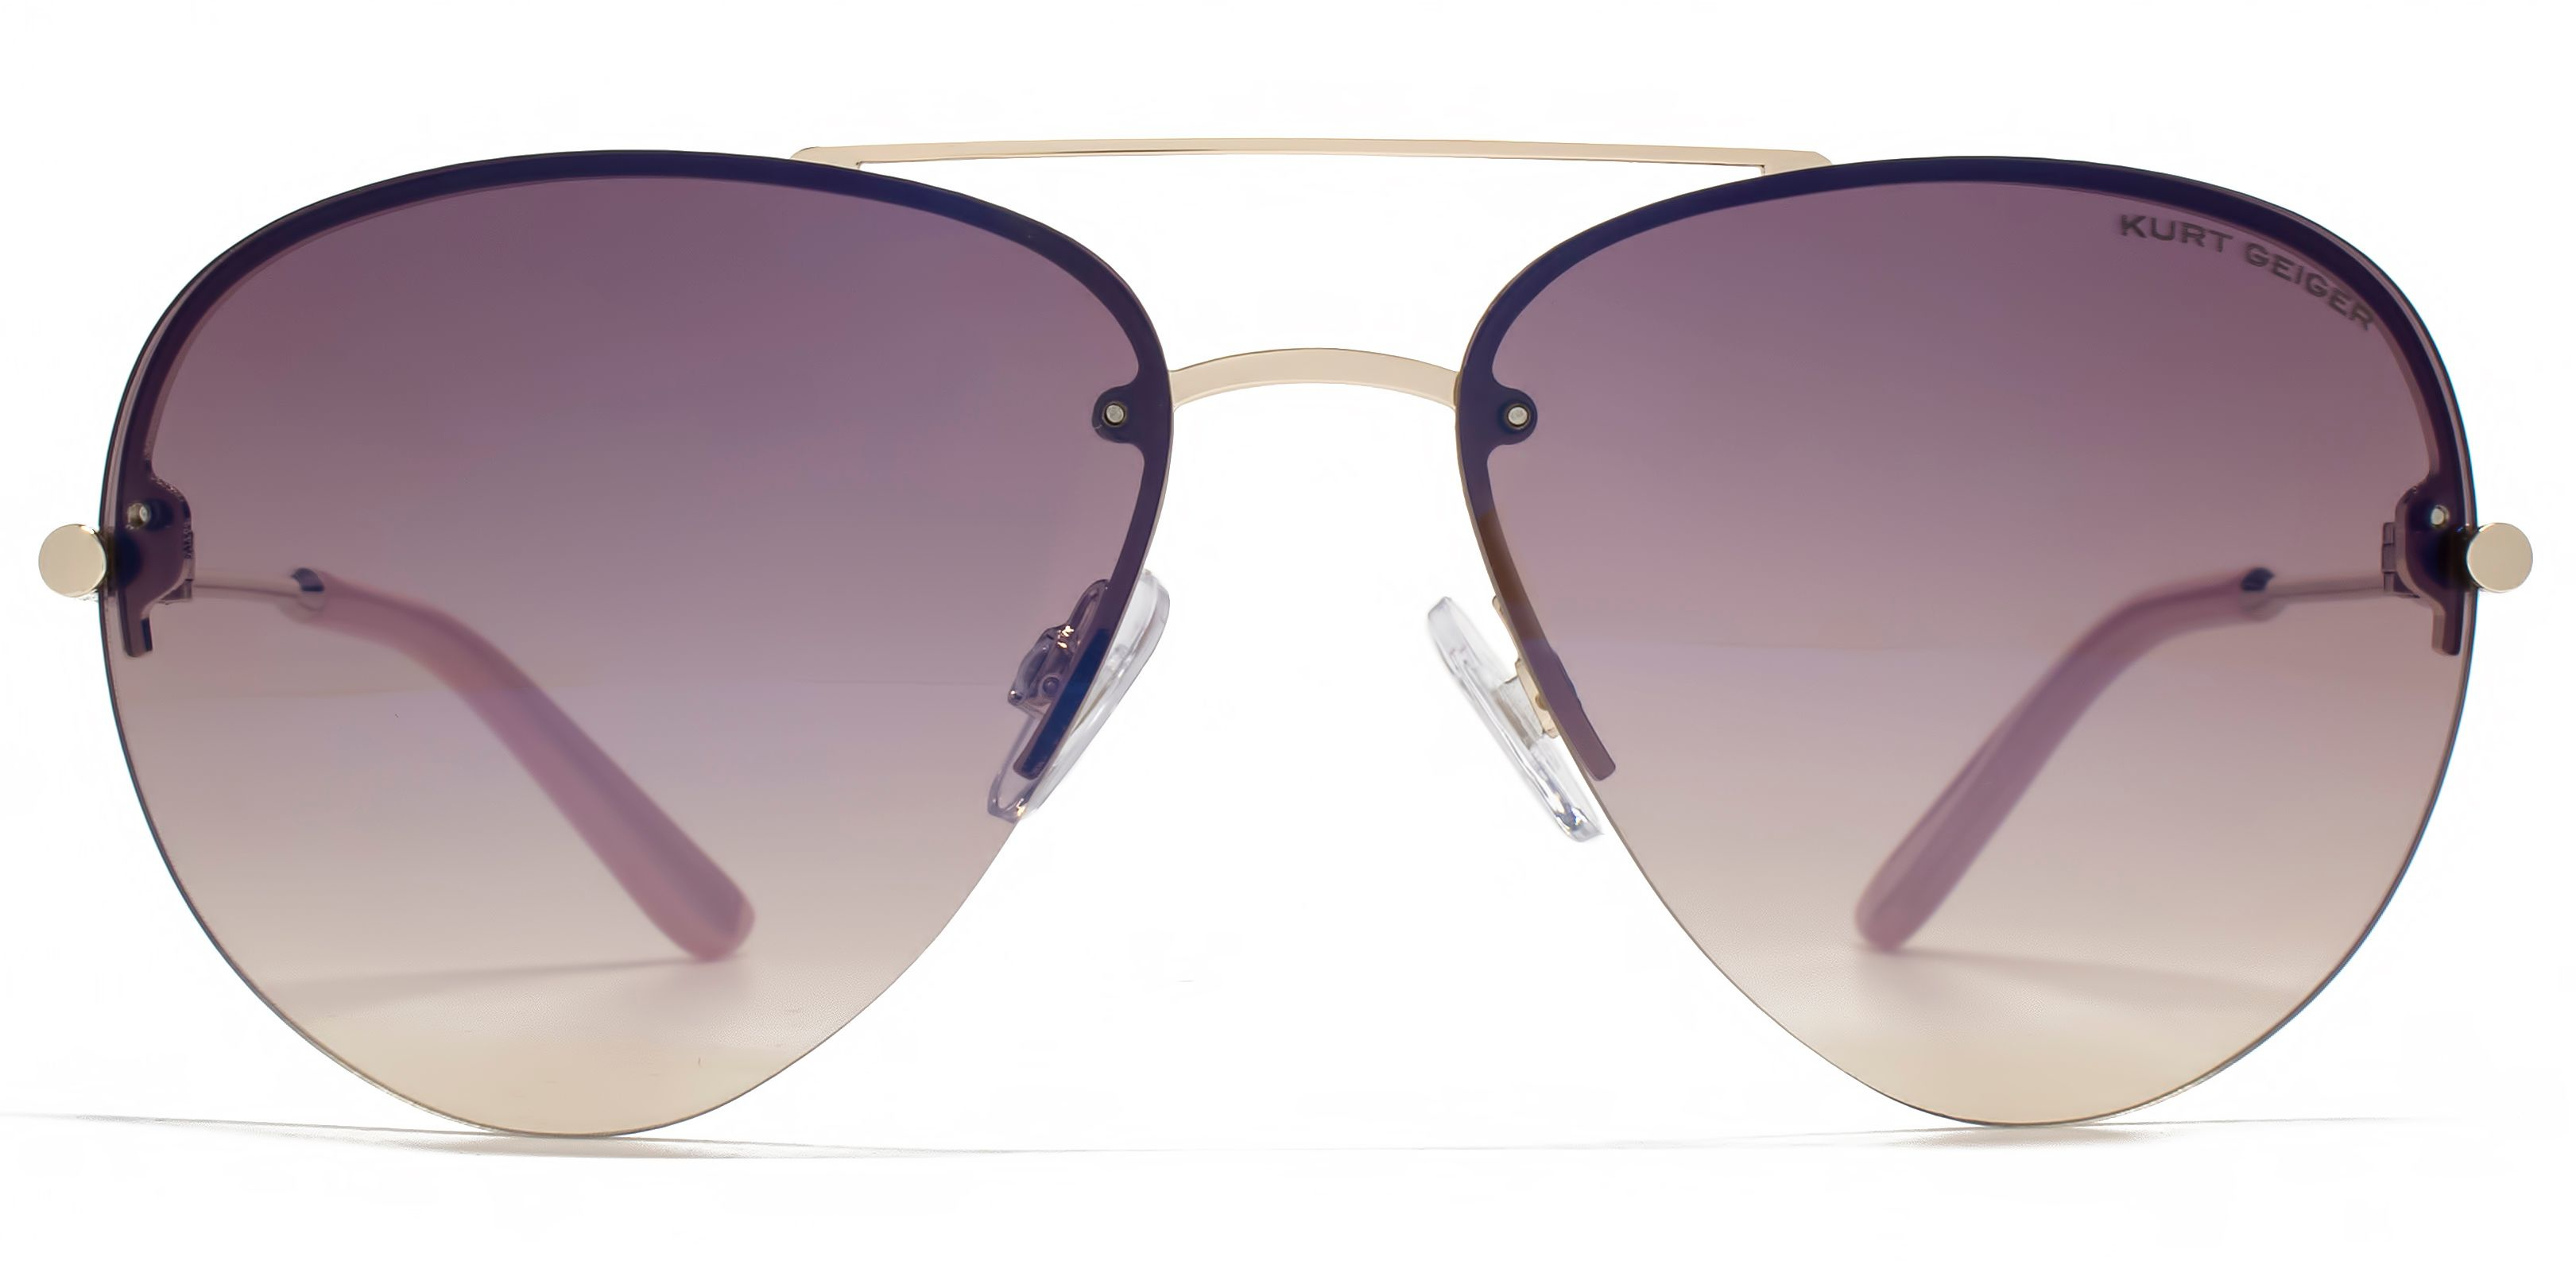 Kurt Geiger 26kgl031 Gold Aviator Sunglasses in Metallic